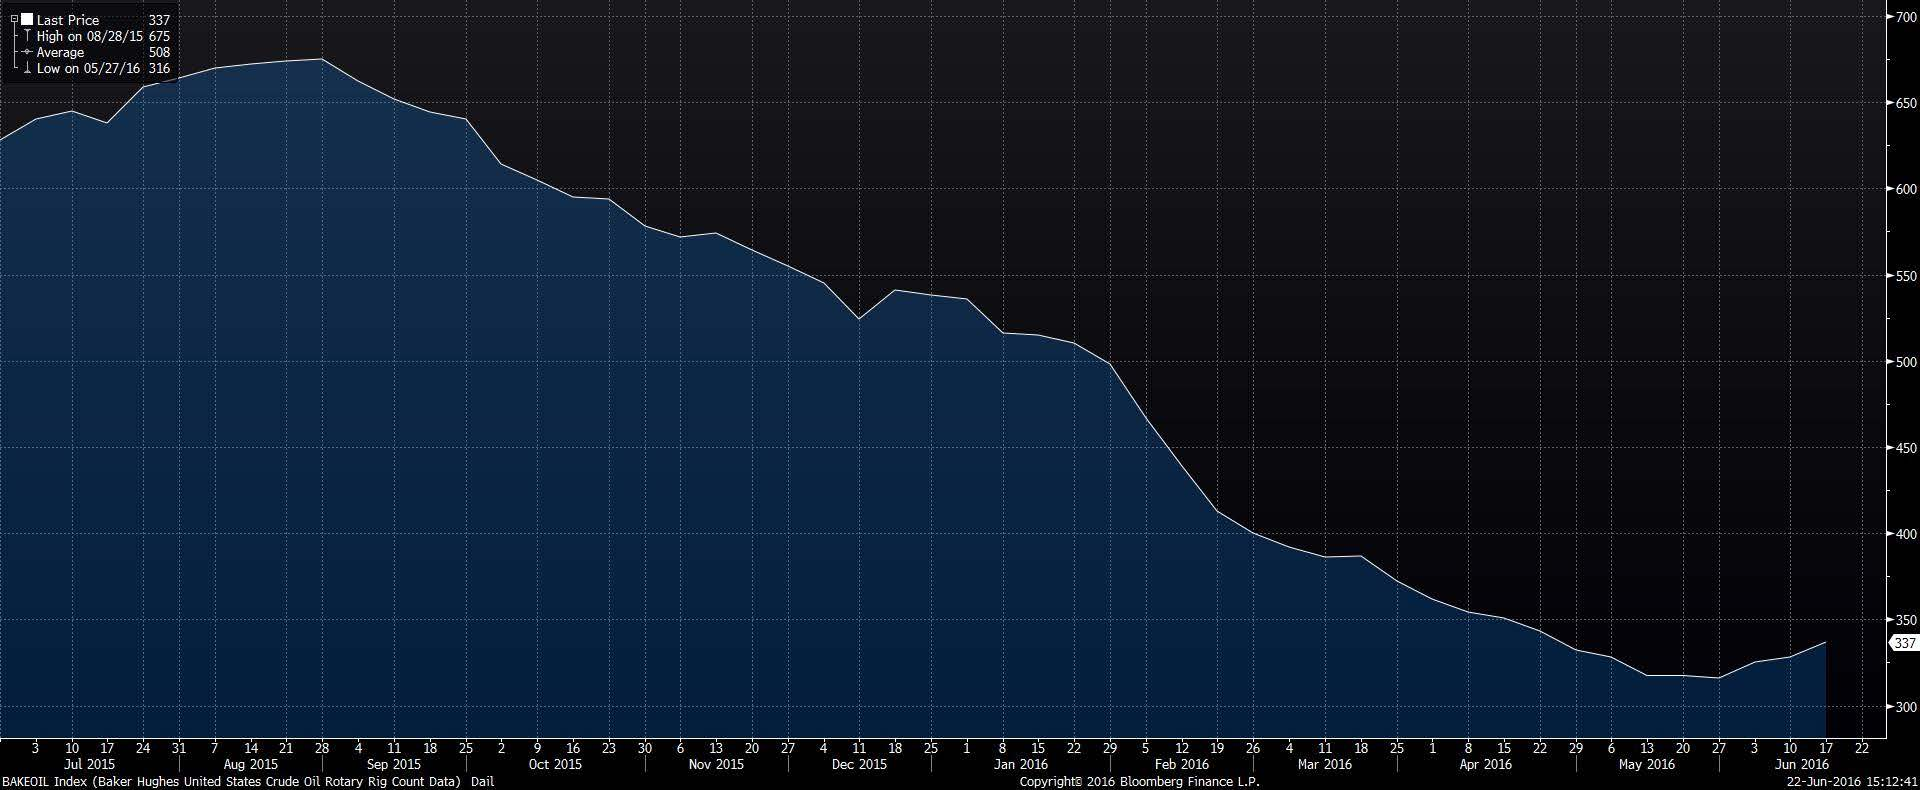 Source: Baker Hughes Oil Rig Count, via Bloomberg Professional Terminal